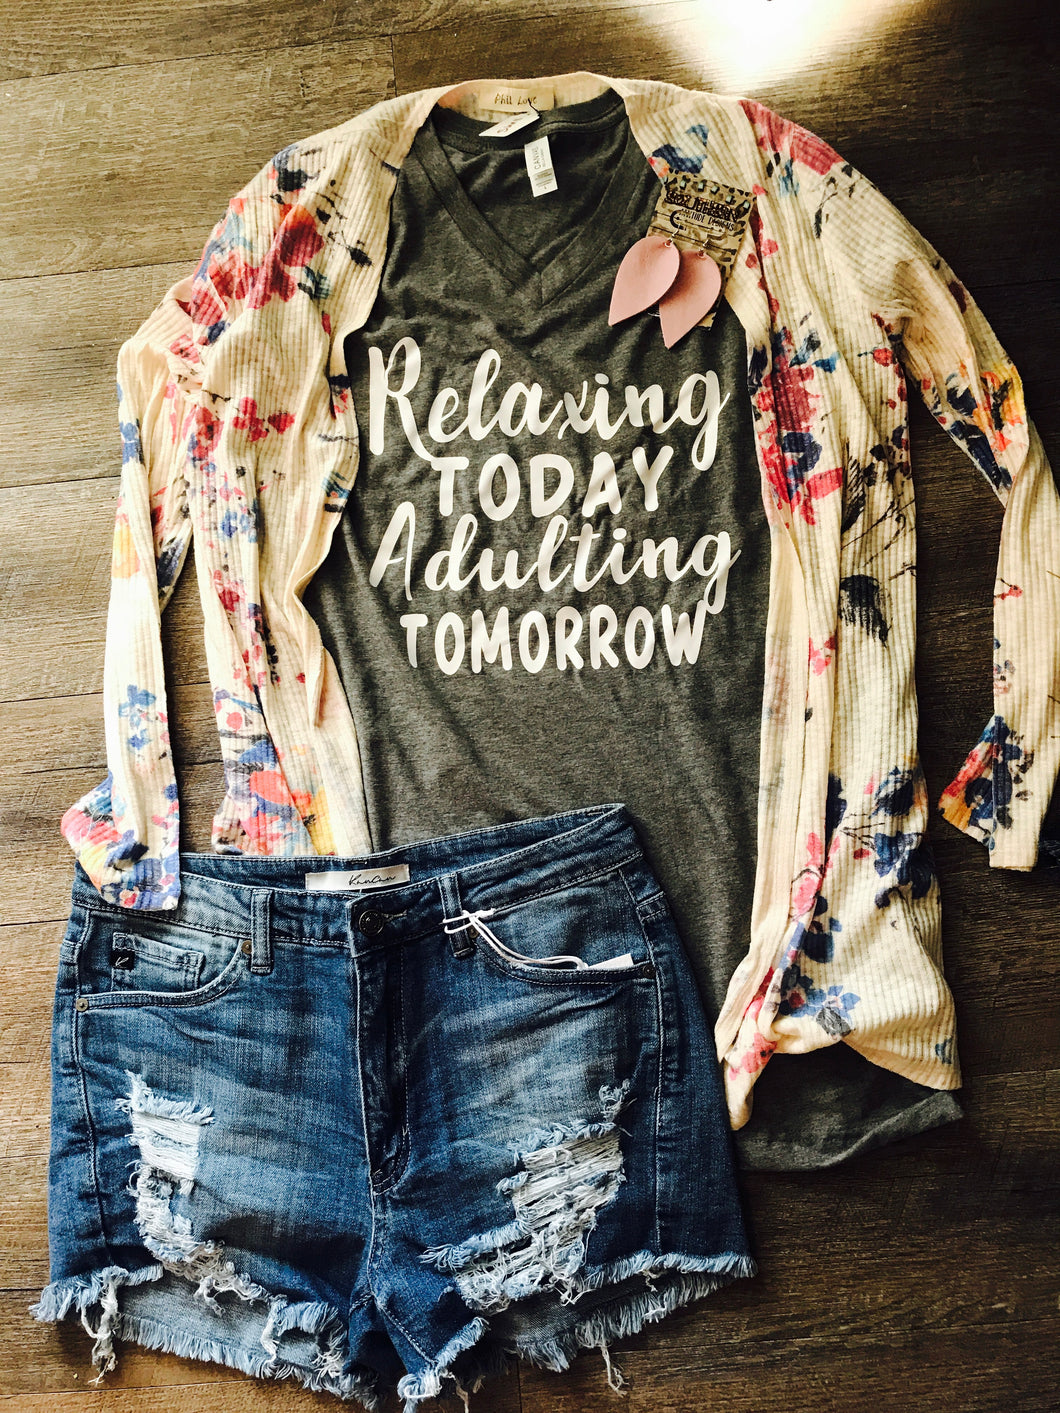 Relaxing today adulting tomorrow custom gray vneck tshirt. Bella canvas funny tee. Gift - Mavictoria Designs Hot Press Express